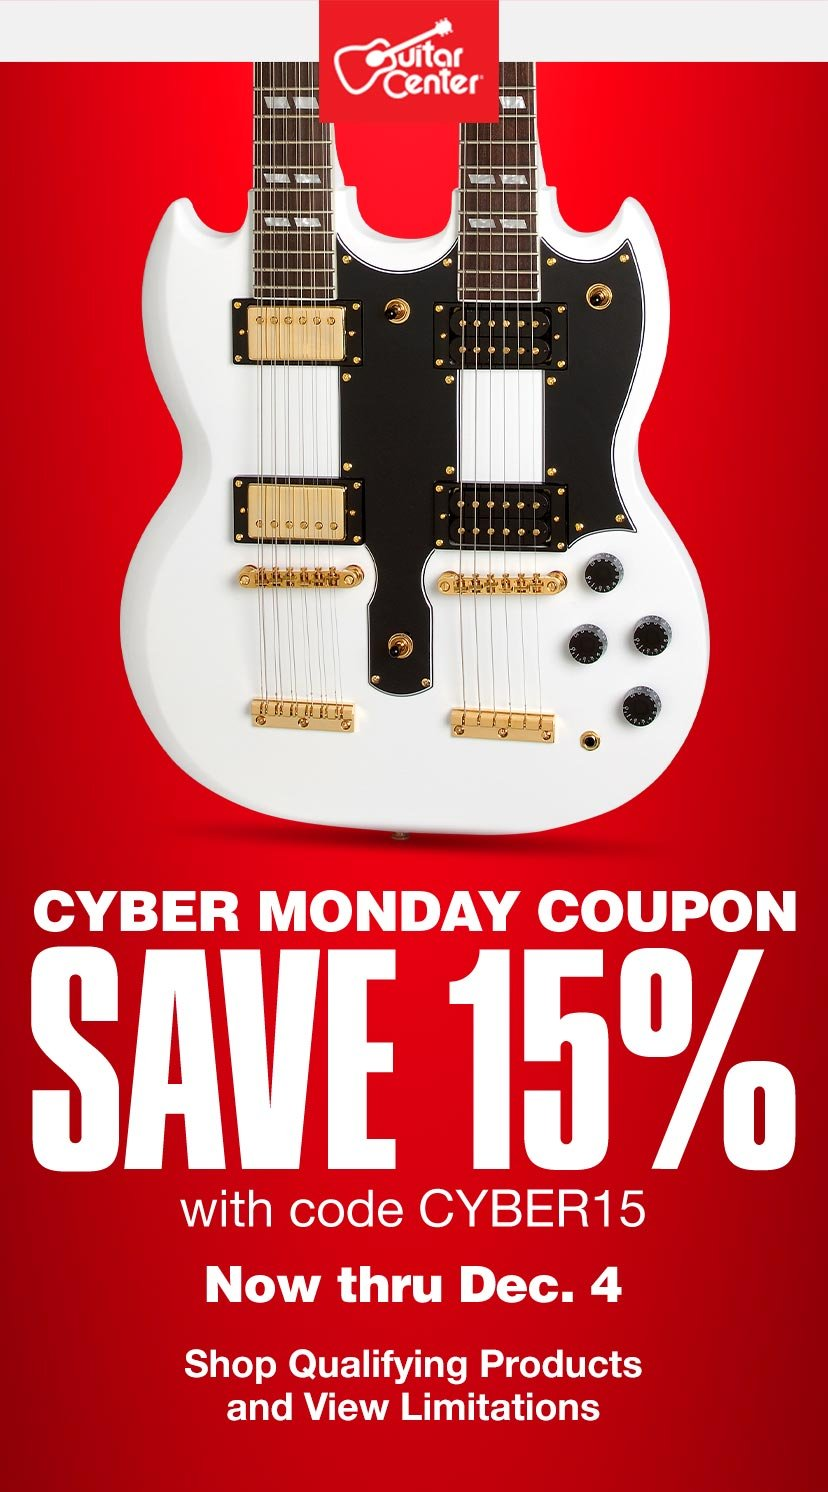 Guitar Center Cyber Monday Coupon Inside Milled